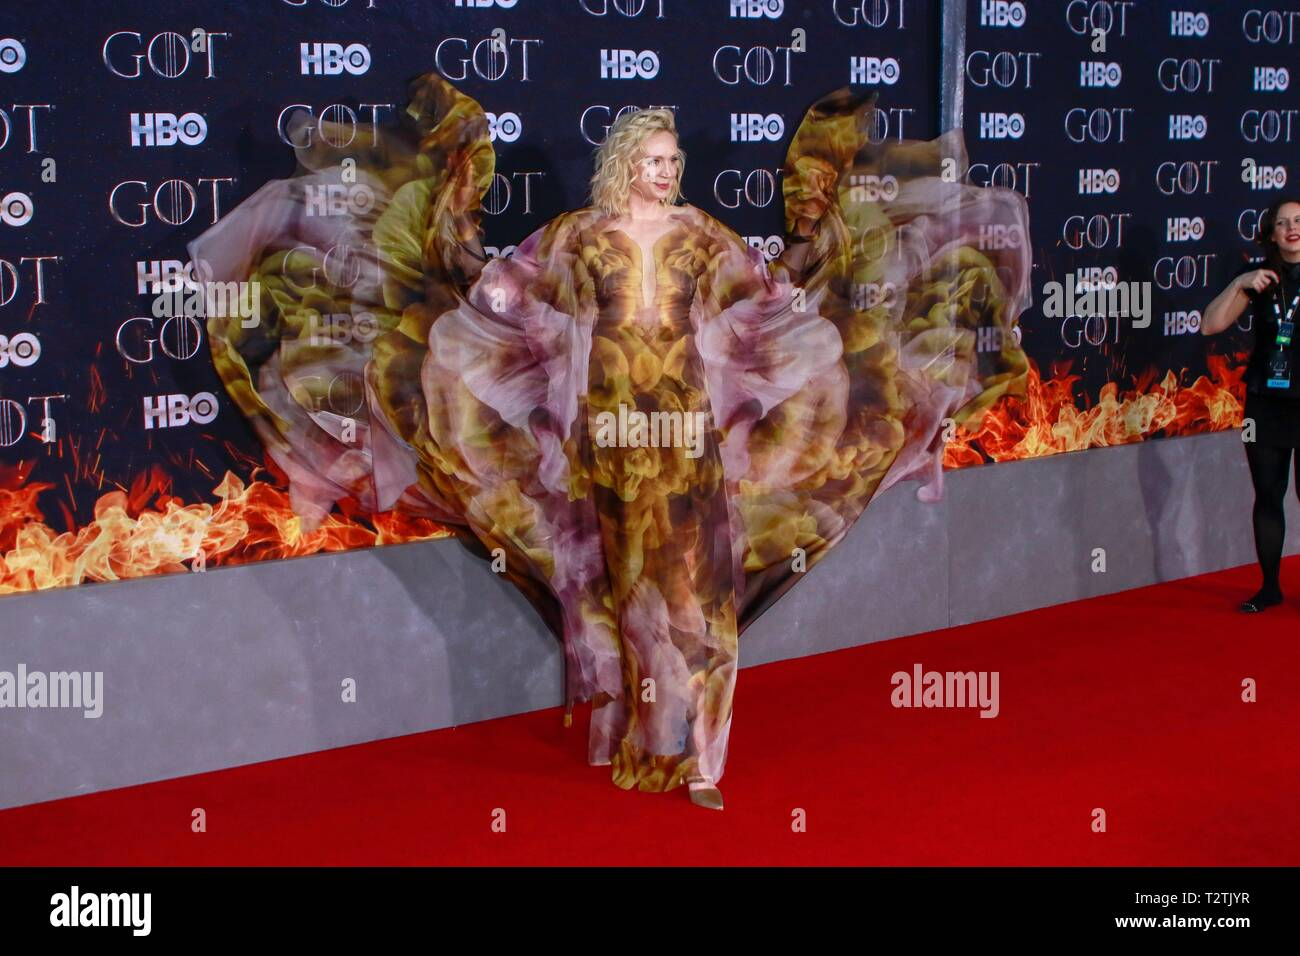 New York, NY, USA. 3ème apr 2019. Gwendoline Christie au New York première tapis rouge de la dernière saison de HBO's Game Of Thrones au Radio City Music Hall le 3 avril 2019 à New York. Crédit : Diego Corredor Punch/media/Alamy Live News Photo Stock